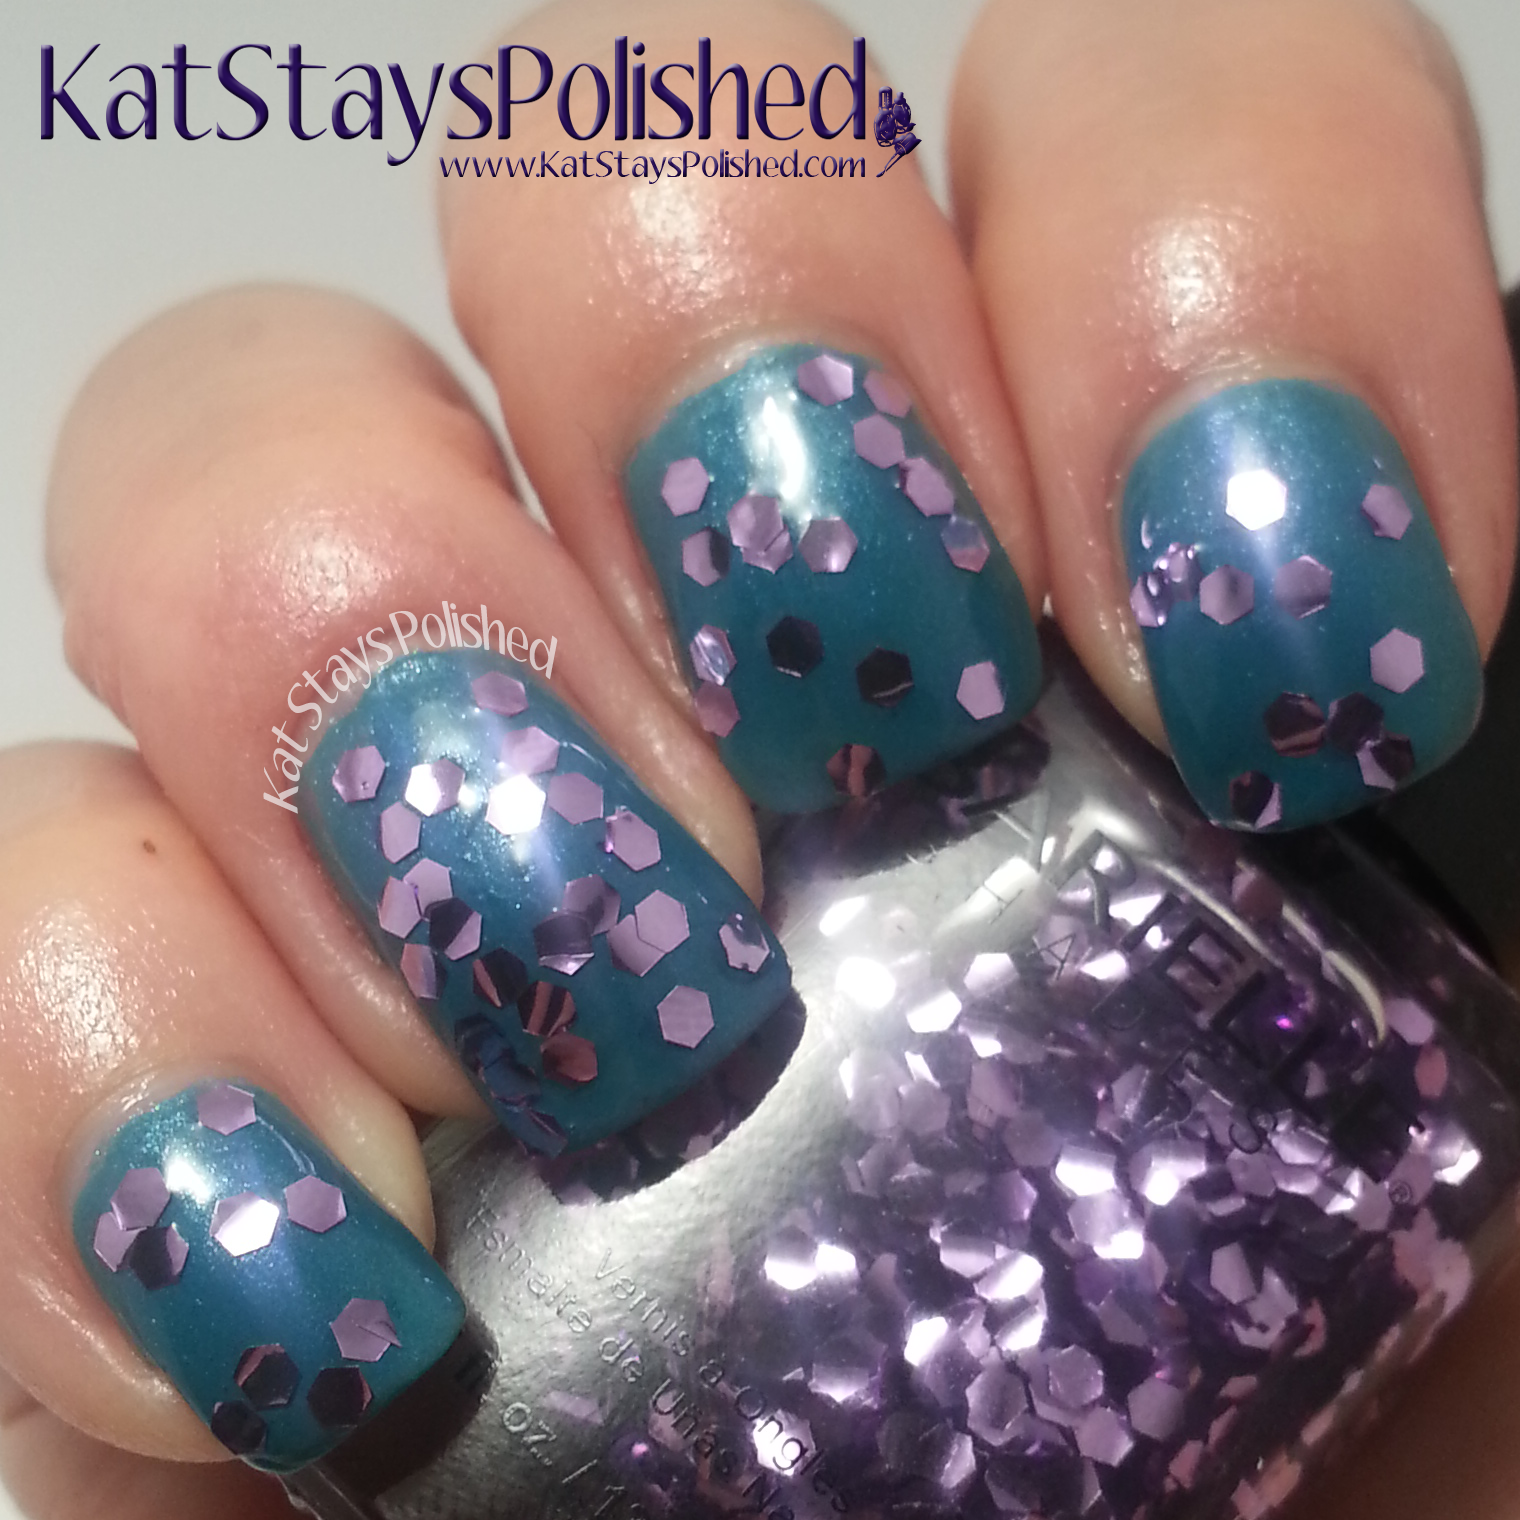 Barielle Bling It On - Amethyst over Under the Sea | Kat Stays Polished